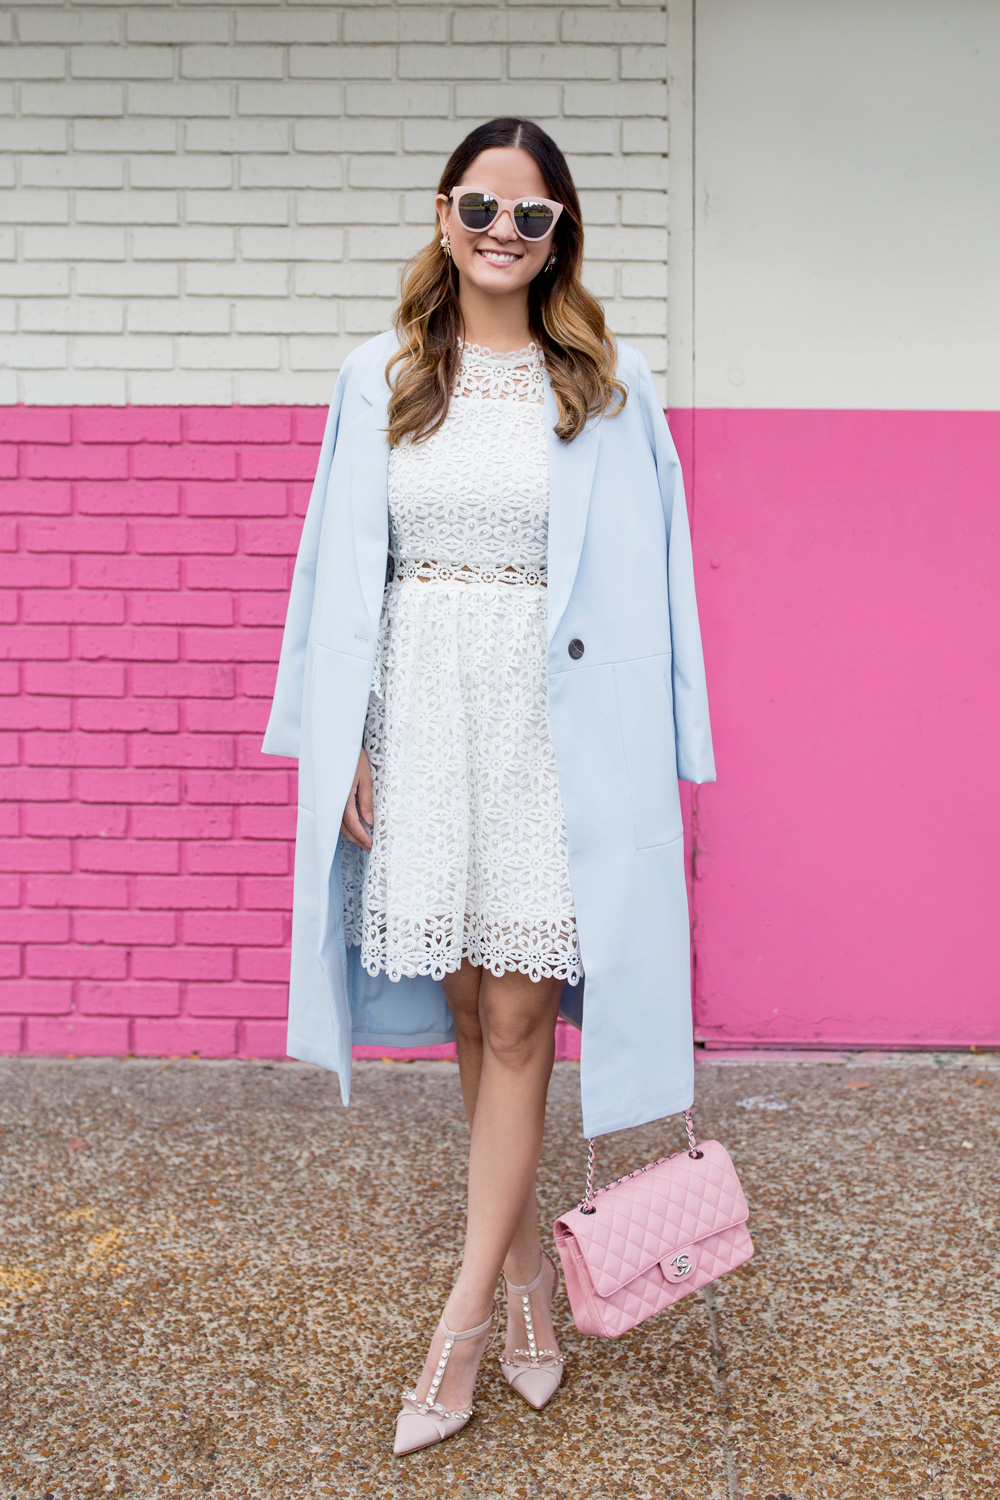 Jennifer Lake Style Charade wearing a white lace bell sleeve dress, long blue coat, Kate Spade Lydia heels, and pink Chanel quilted flap bag at a Chicago pink wall